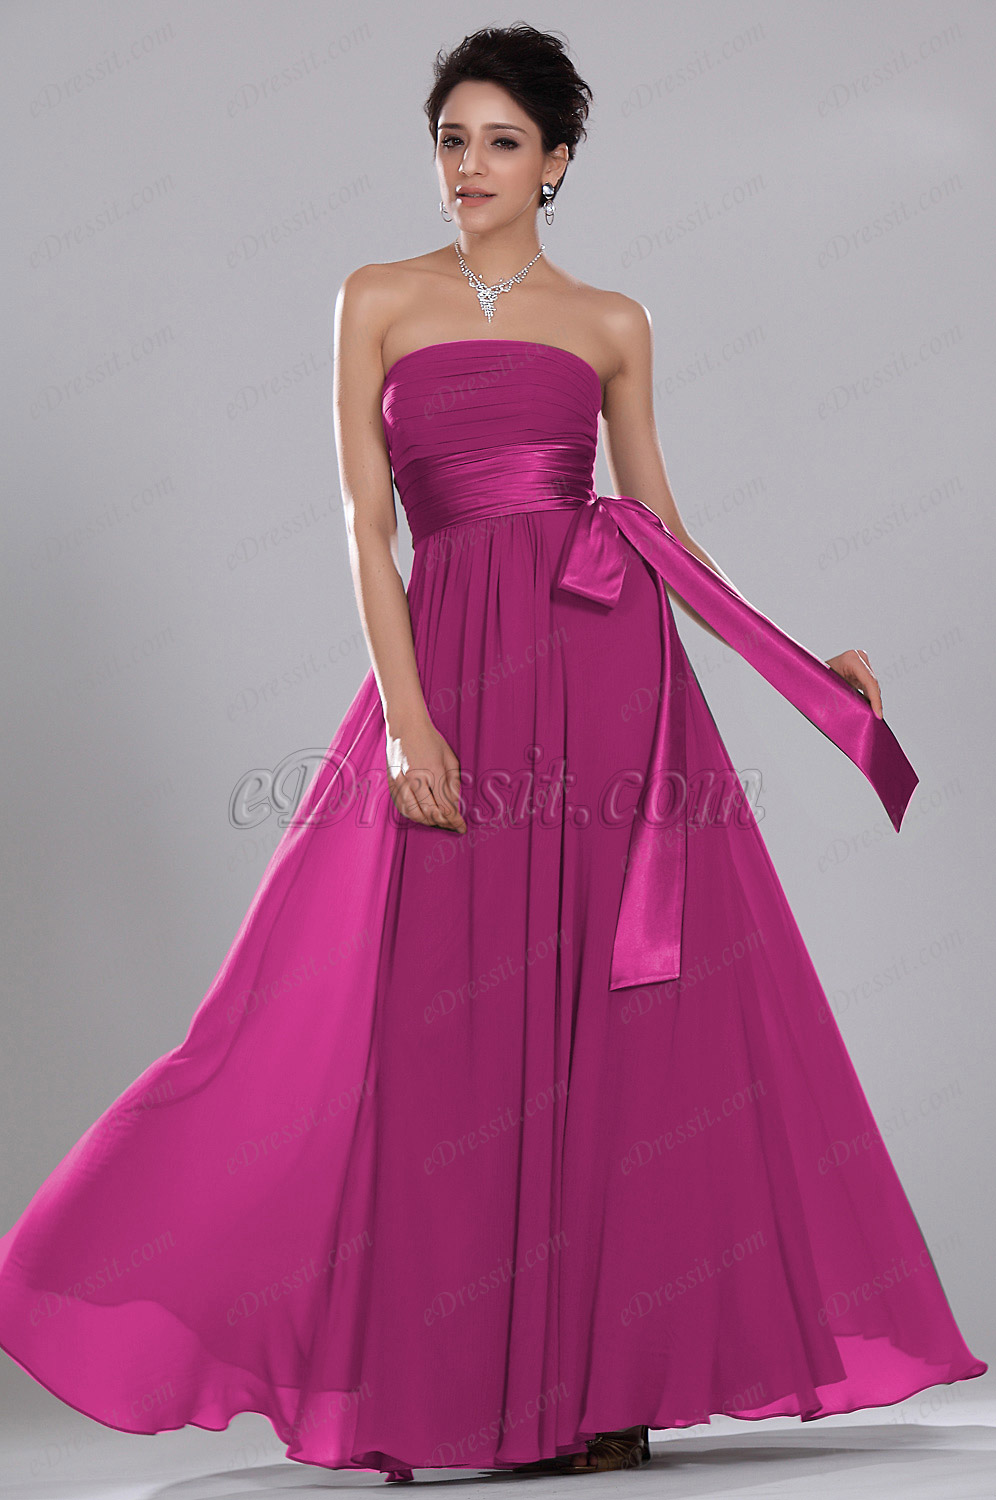 eDressit Simple Elegant Strapless Evening Dress ONLY ONE PIECE SIZE UK8 (00119212)